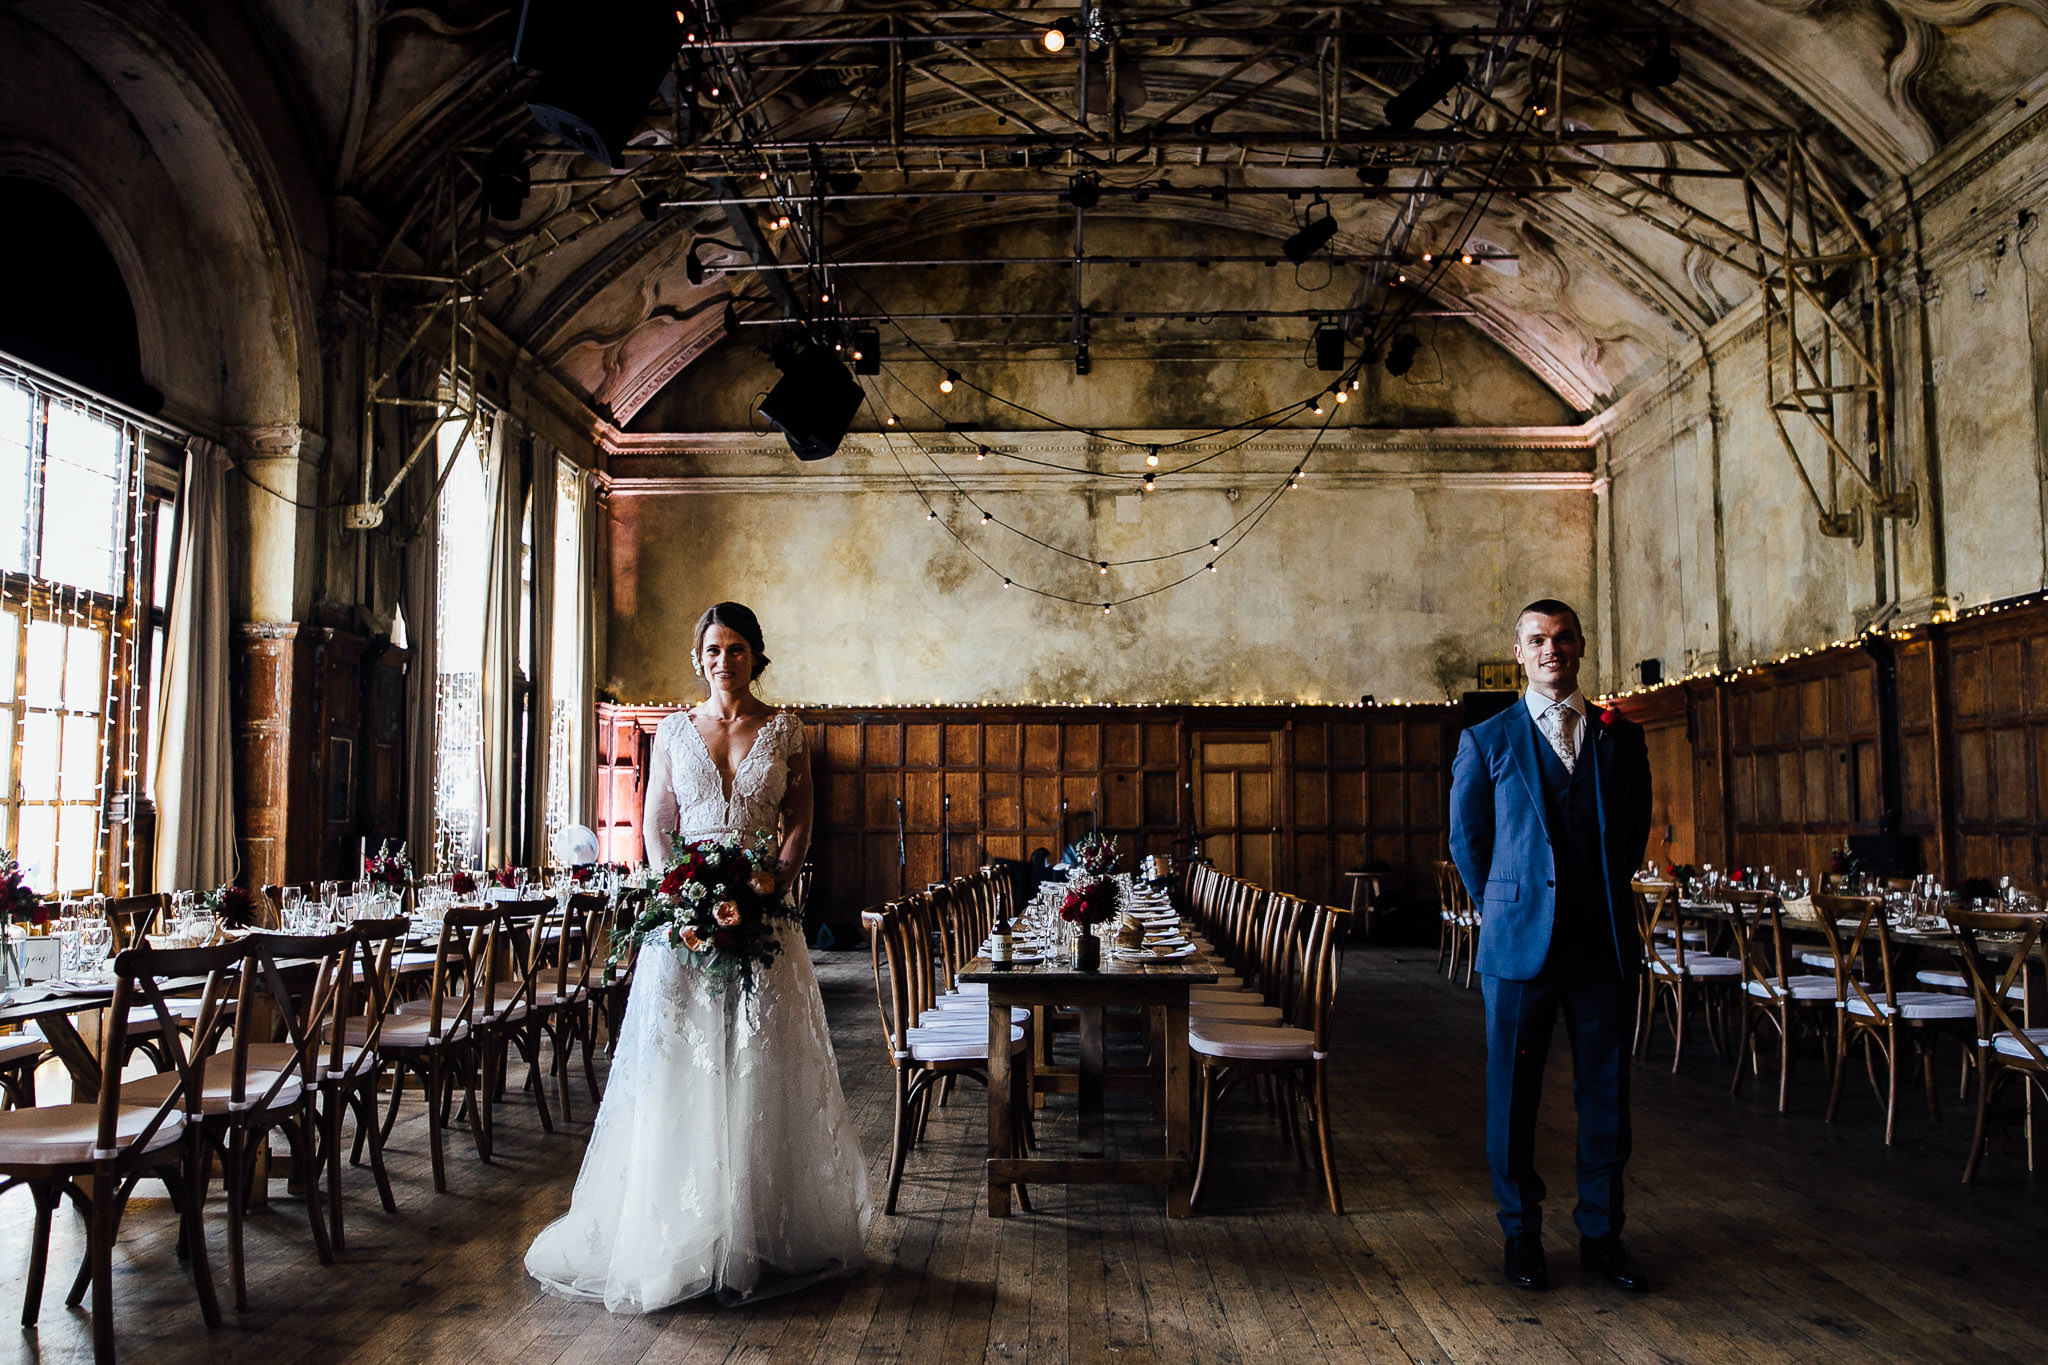 warehouse rustic decor battersea arts centre wedding photos